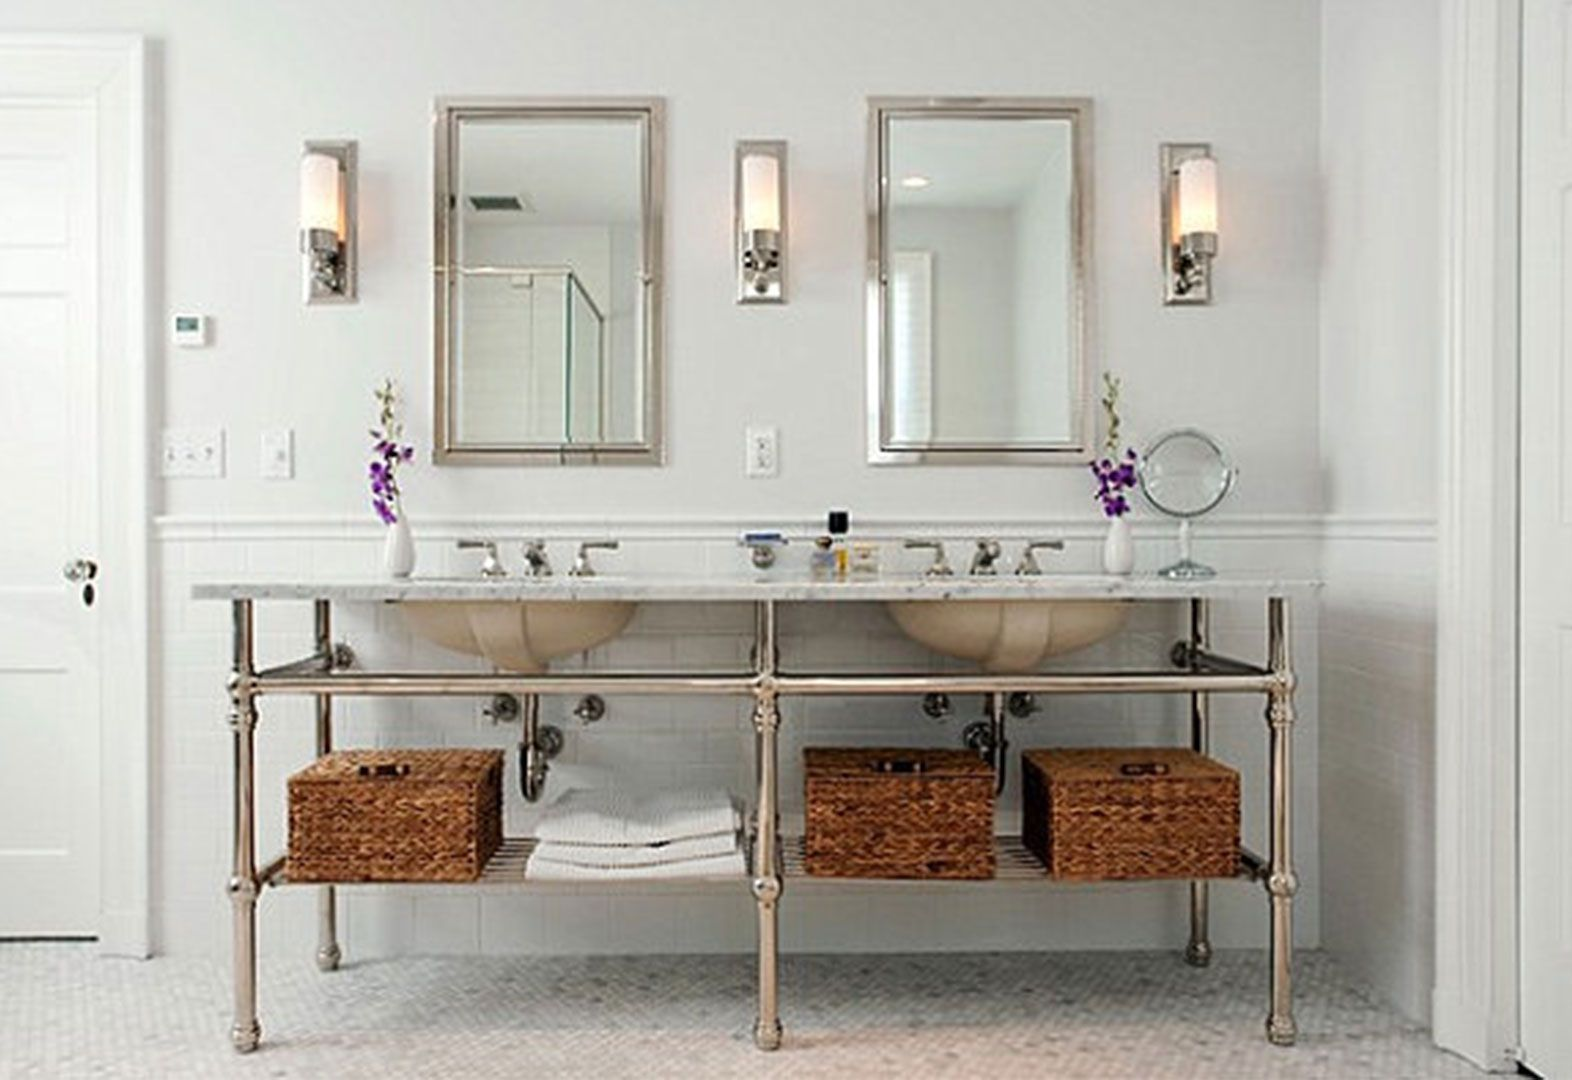 Bathroom lamp design ideas elegant bathroom lighting ideas with bathroom lamp design ideas elegant bathroom lighting ideas with double rectangular mirror and luxurious frosted lamp aloadofball Gallery